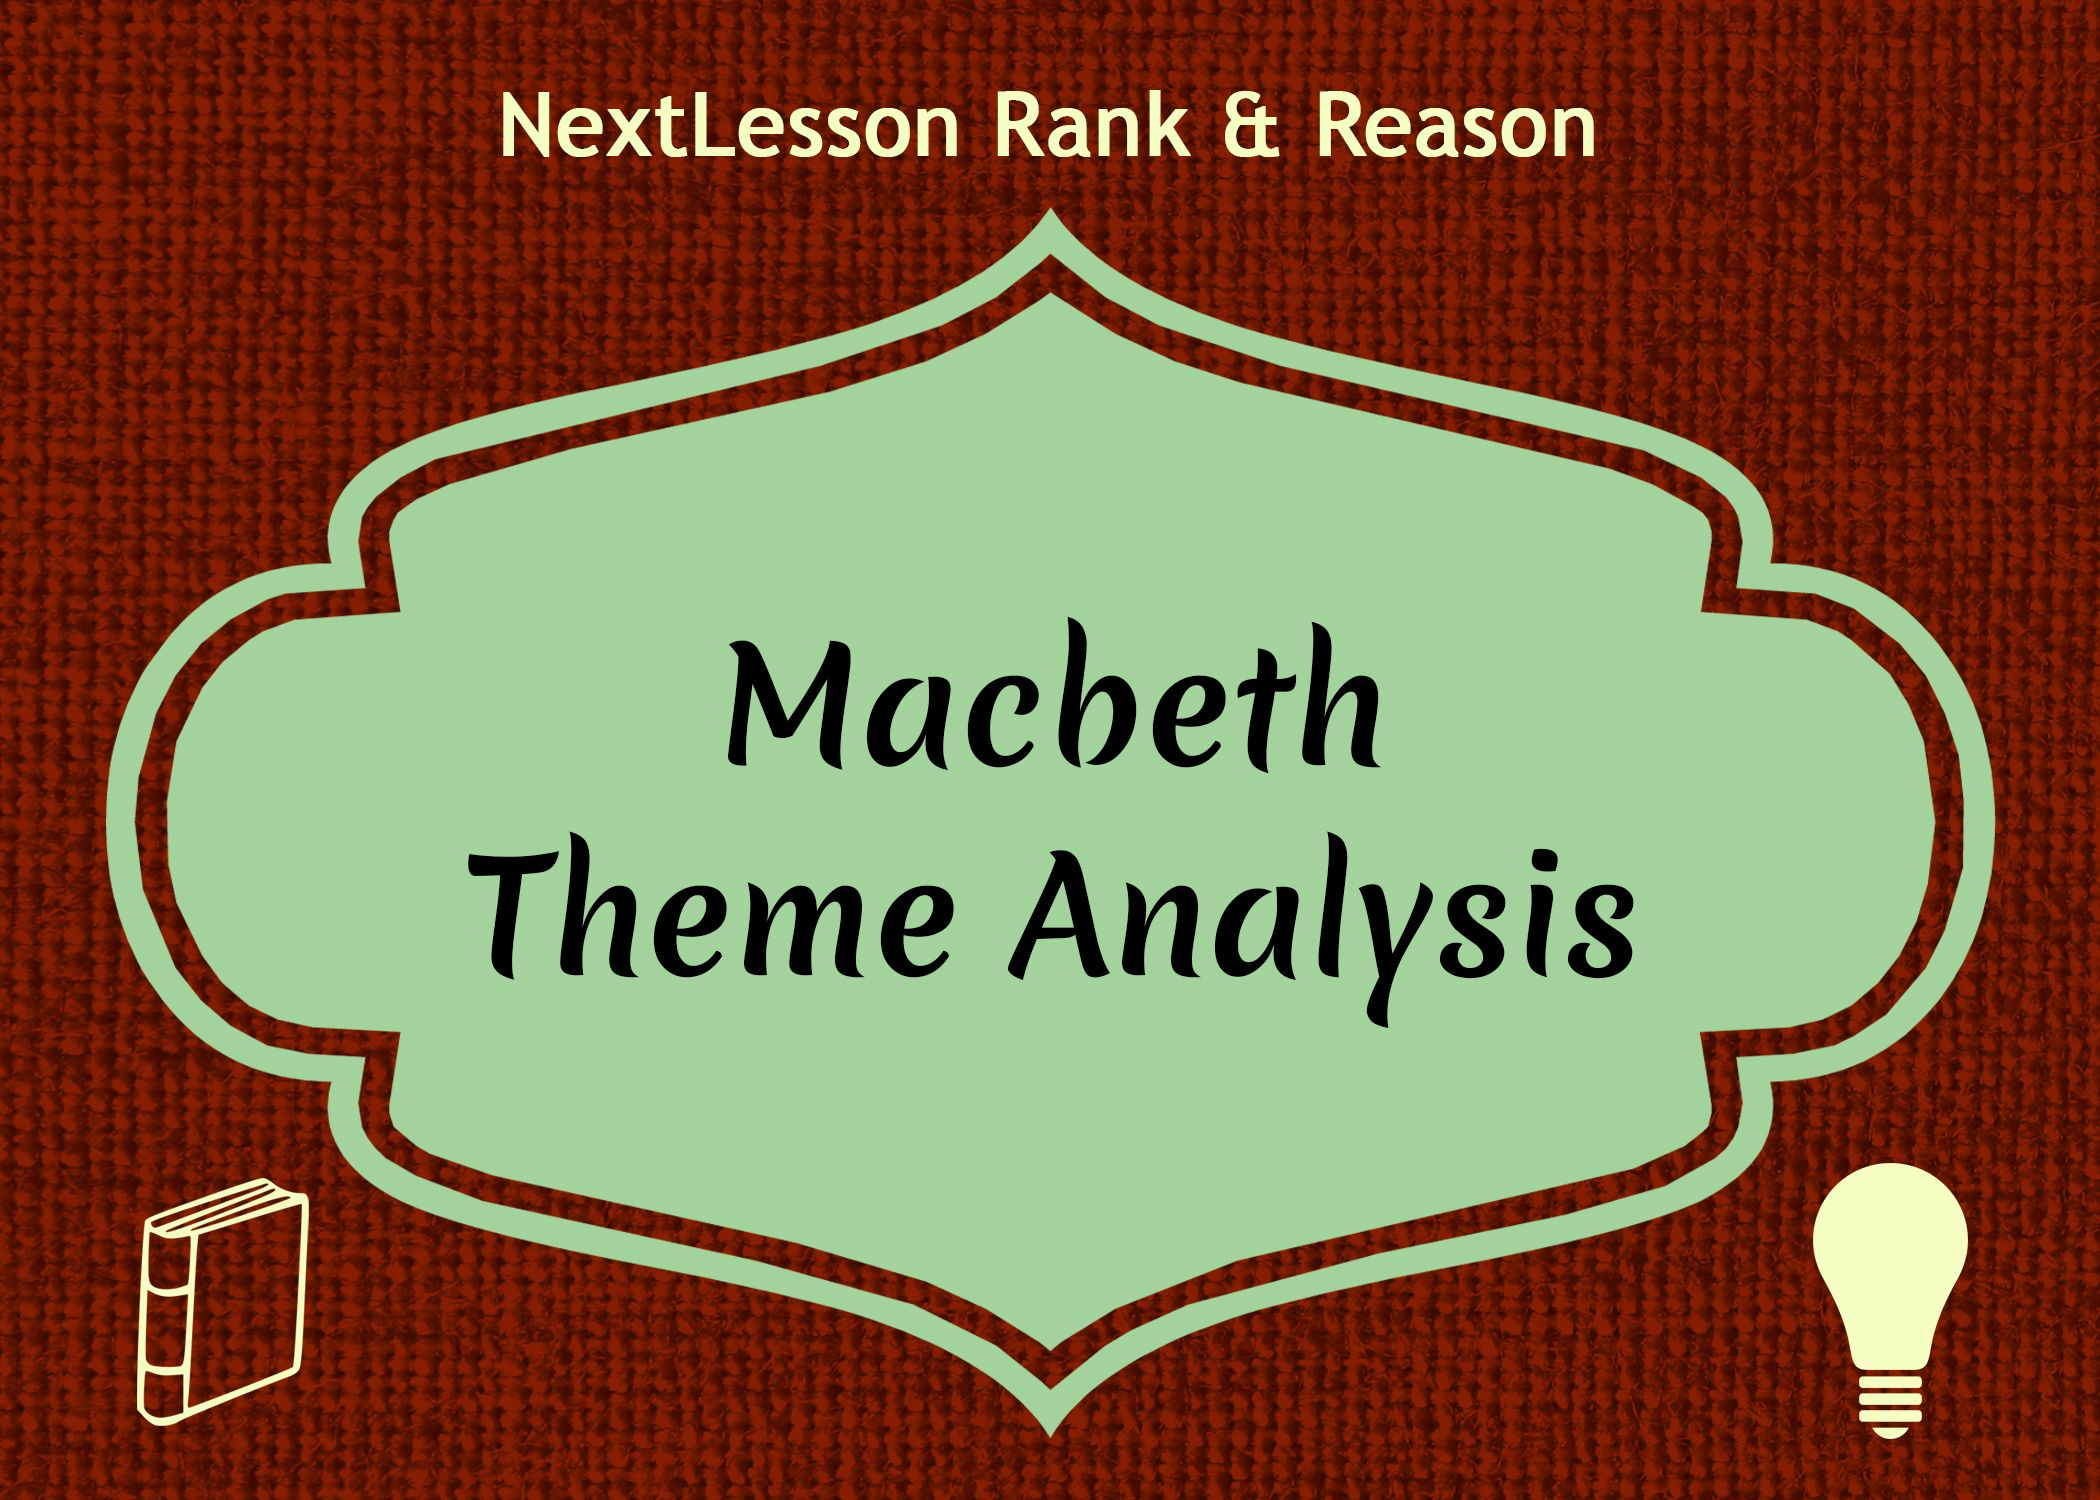 Essay Thesis Statement Generator Macbeth Theme Analysis  Nextlesson Essay Proposal Sample also Essay About English Class Macbeth Theme Analysis  Critical Thinkingproblem Solving Skills  Cause And Effect Essay Thesis